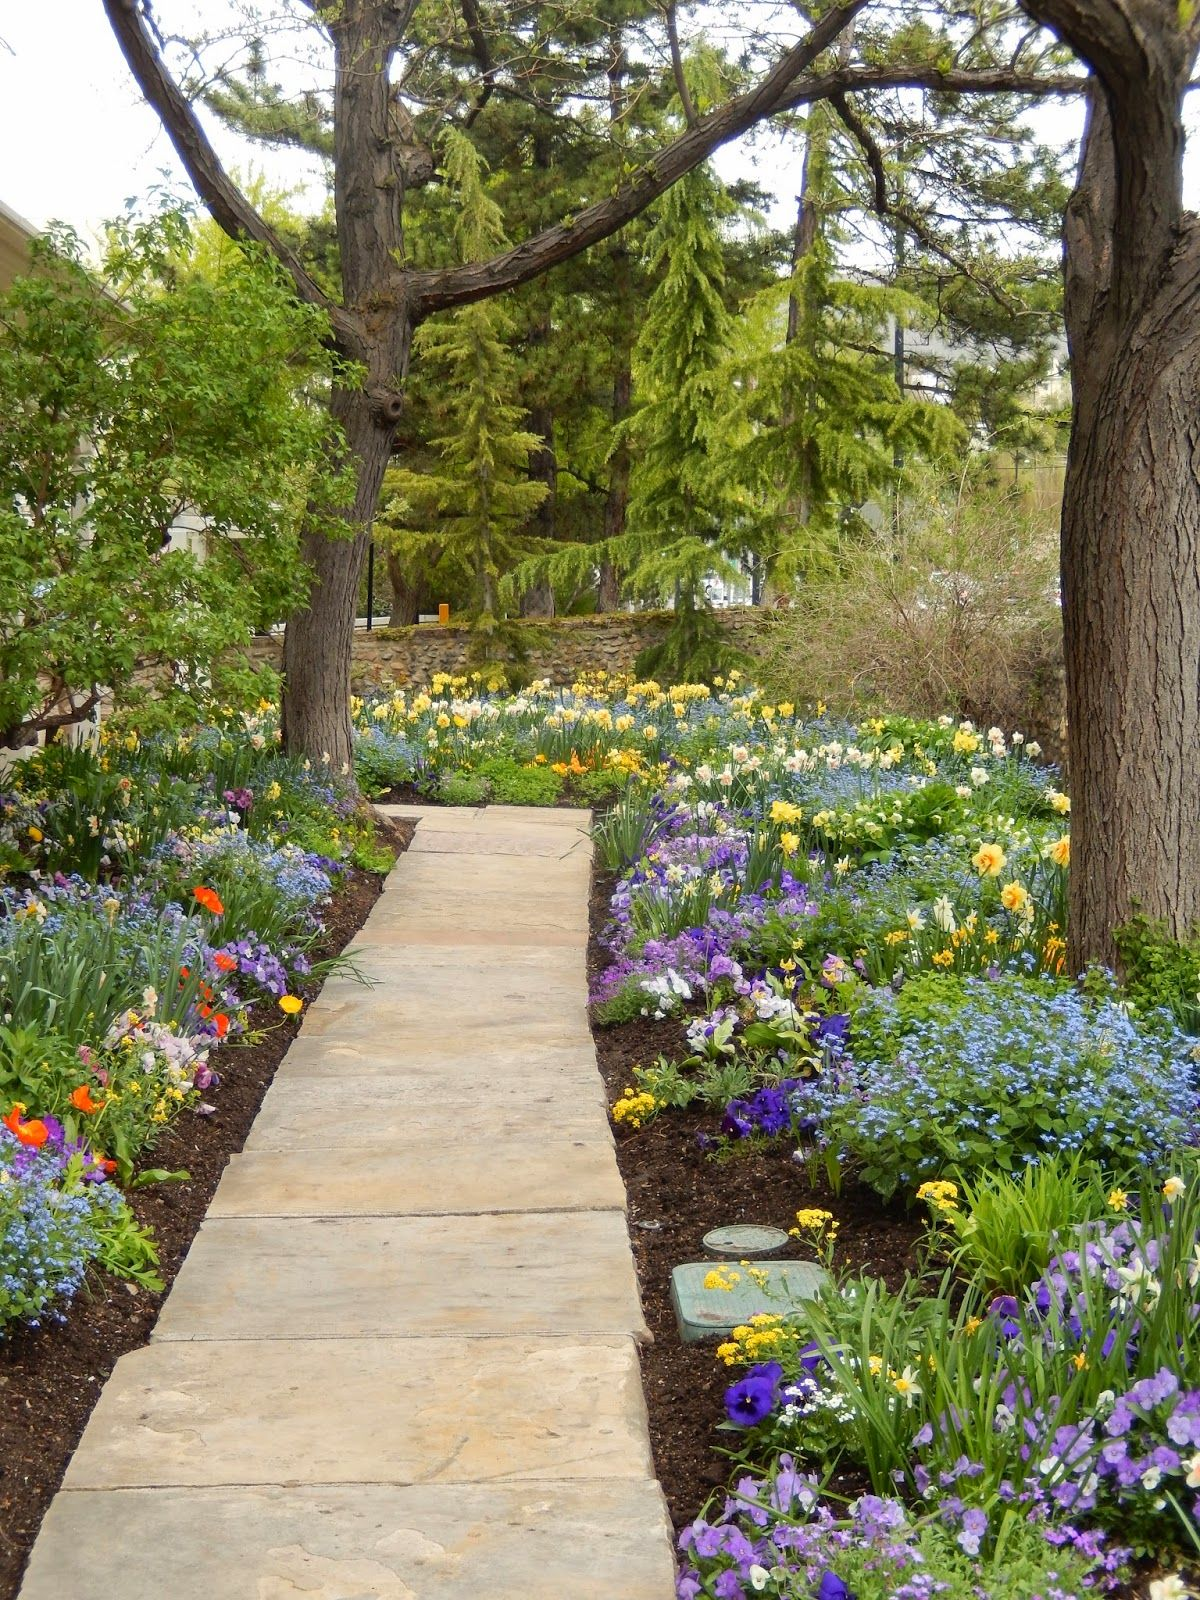 A Spring Garden I Love The Path And The Spring Flowers This Is